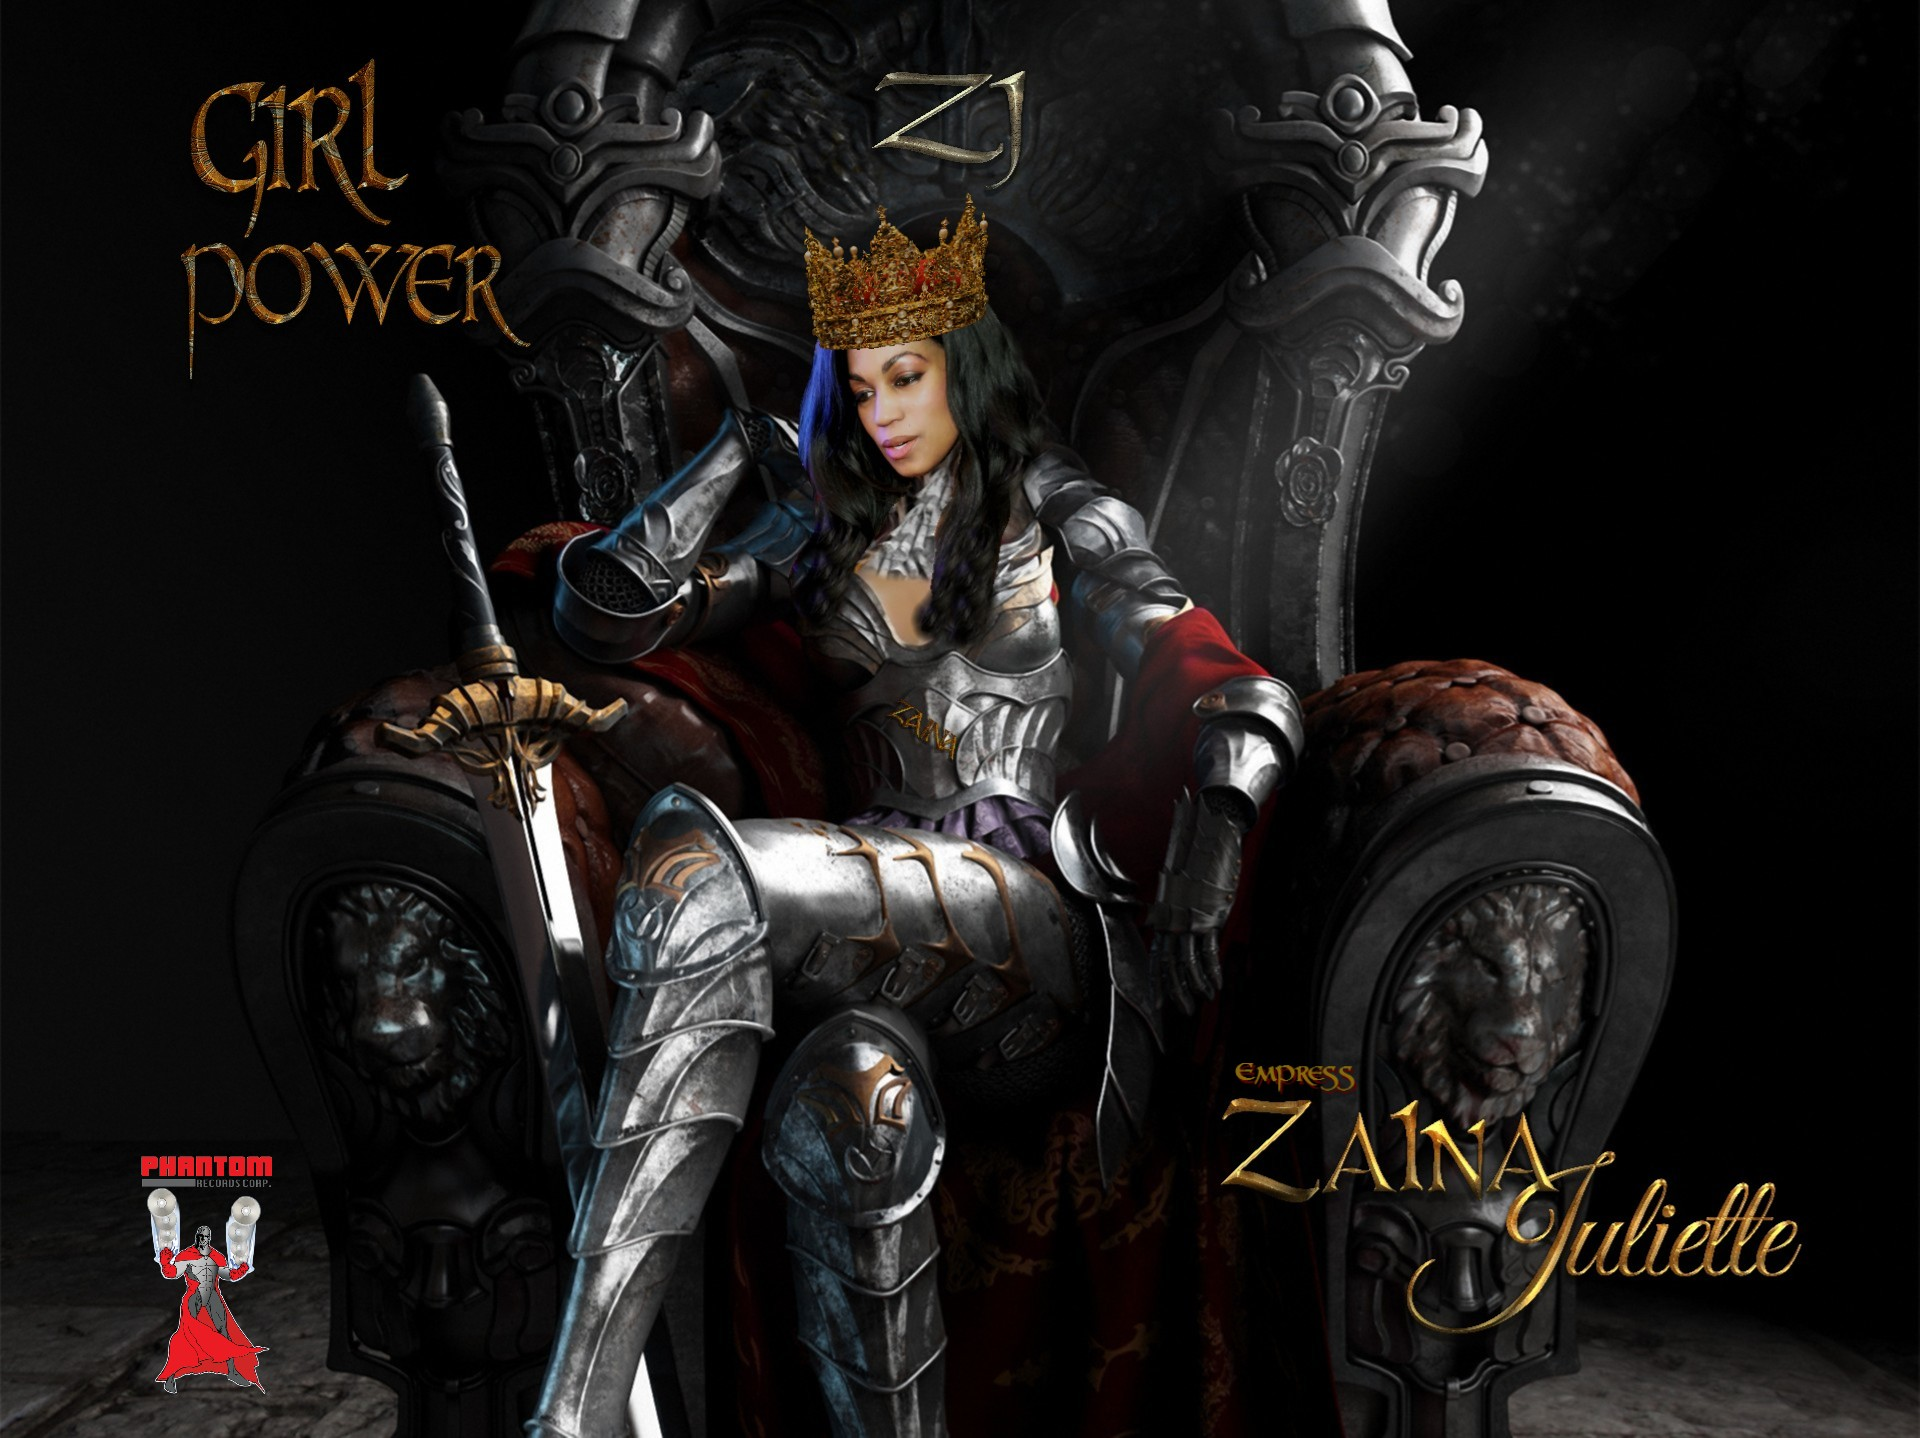 Zaina on new Throne 444t